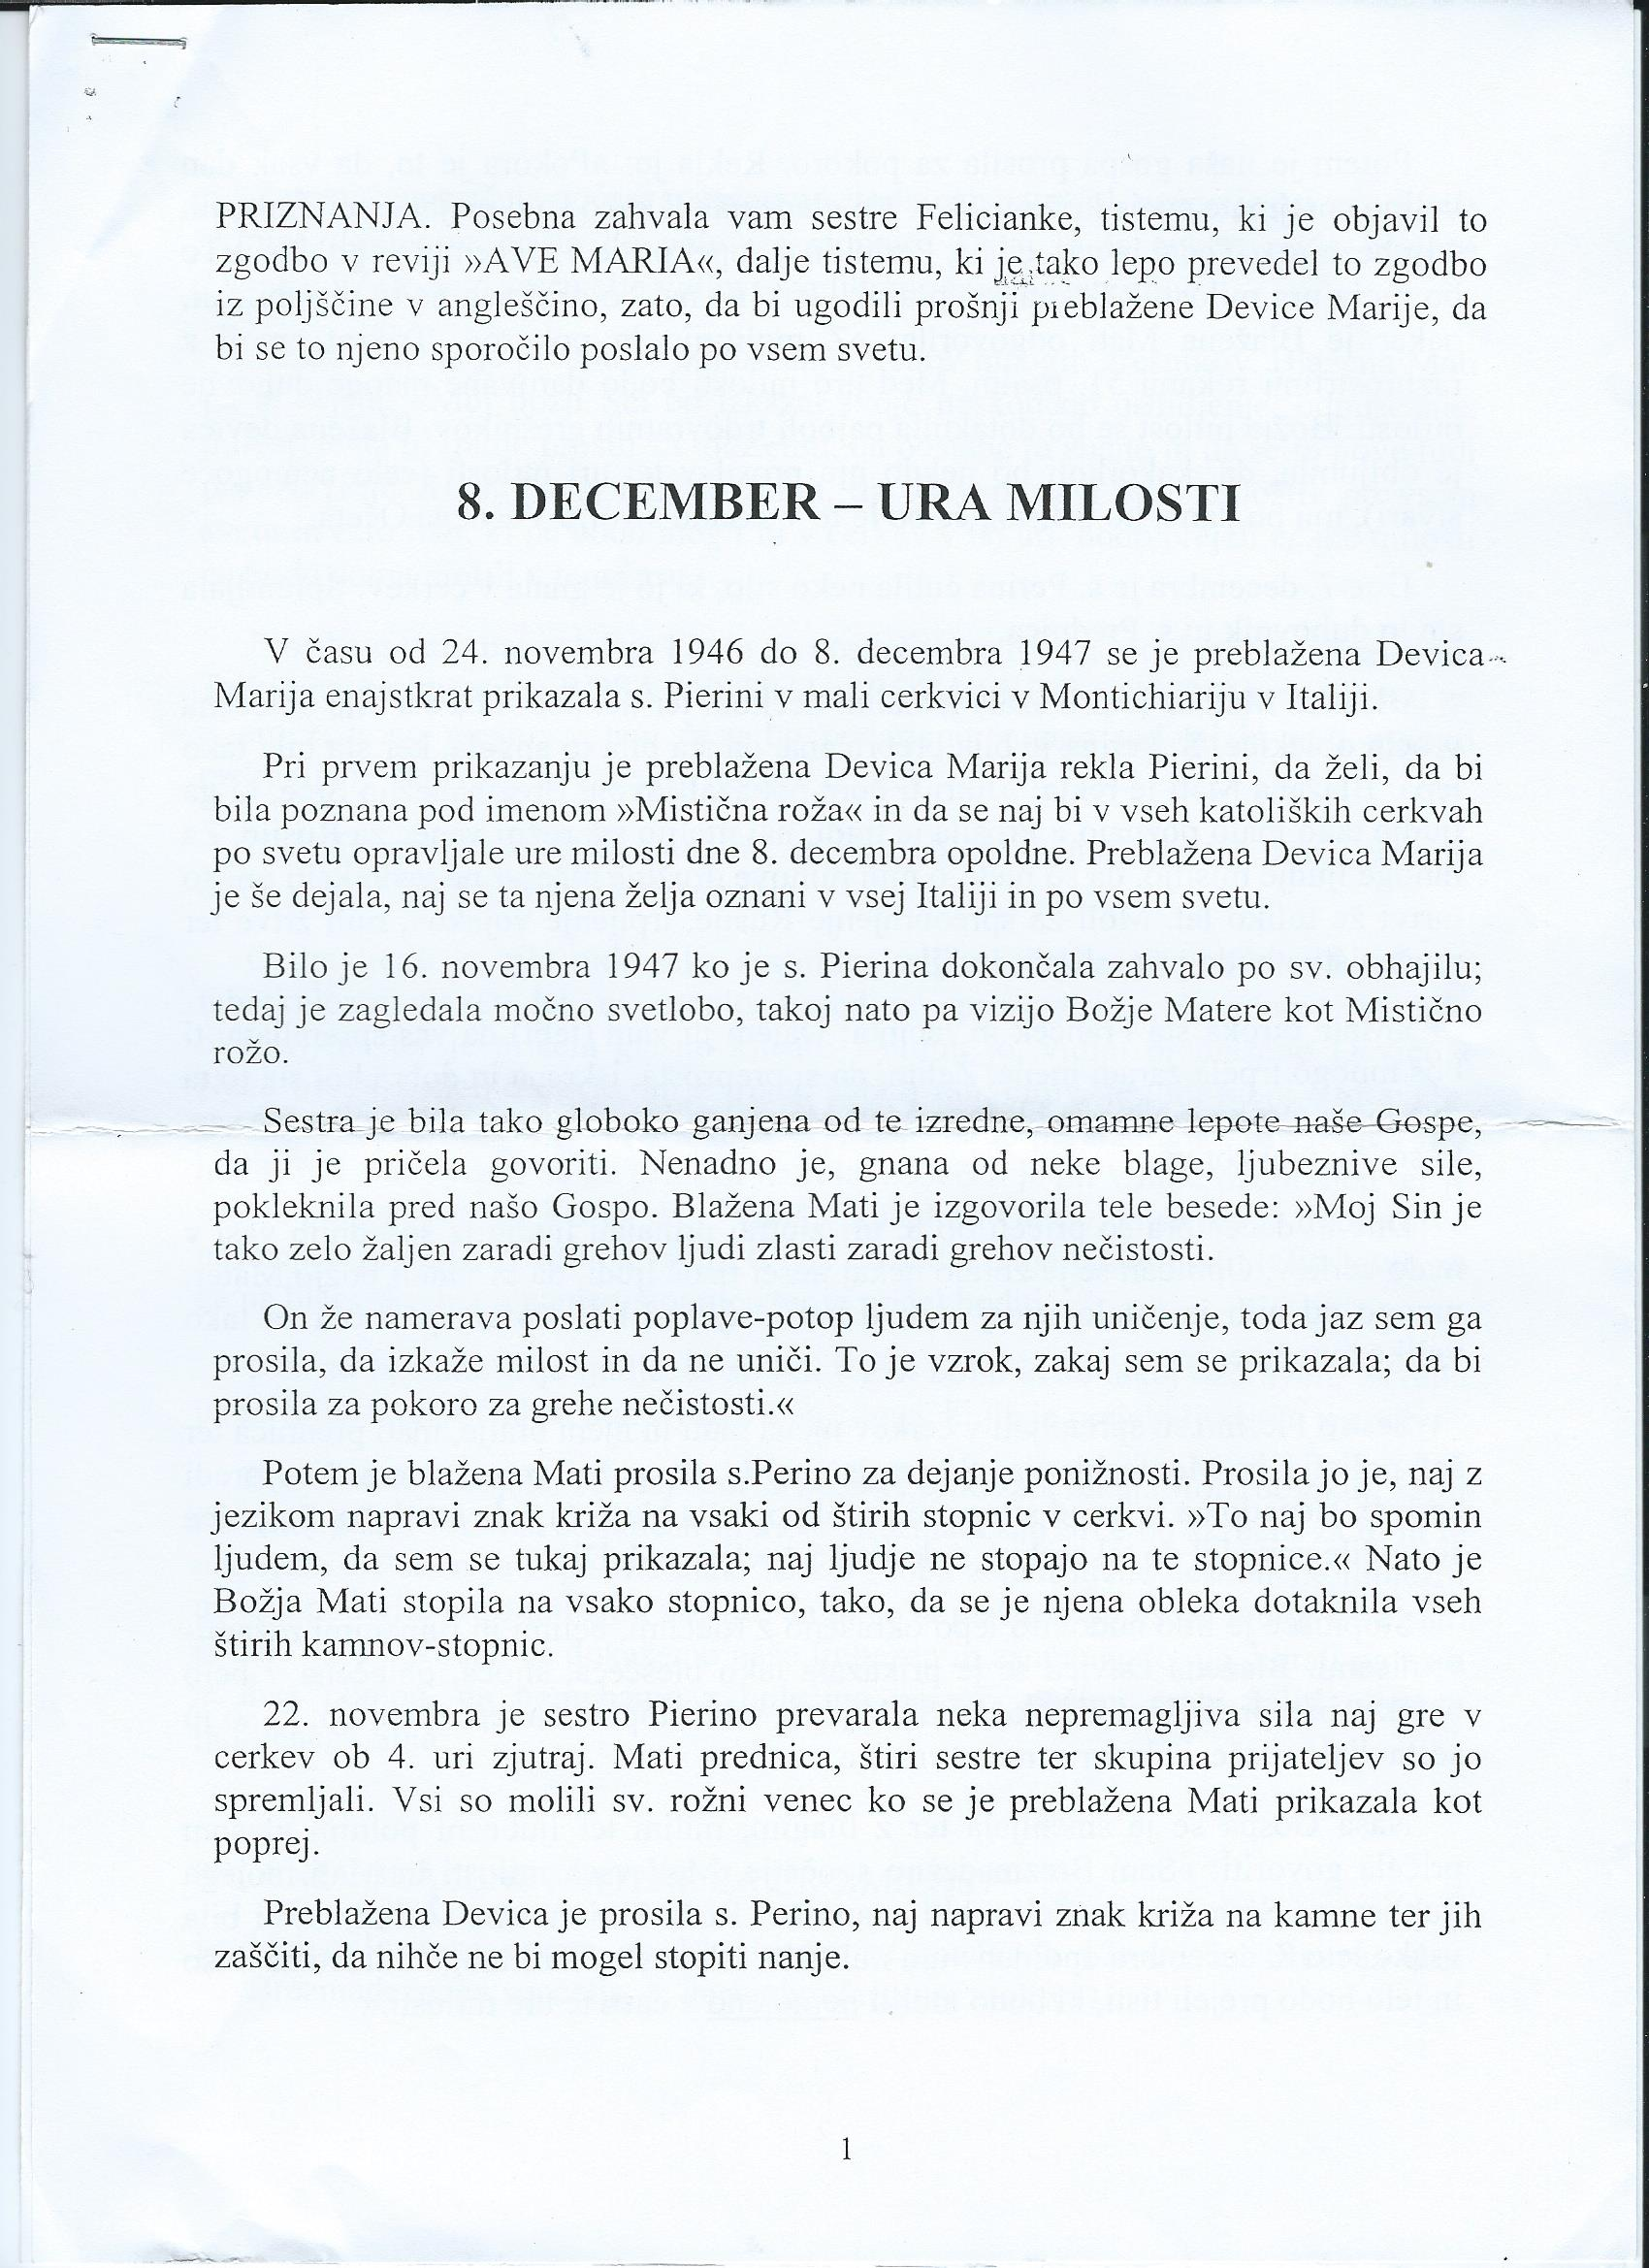 Scan URA MILOSTI 8.DEC0001